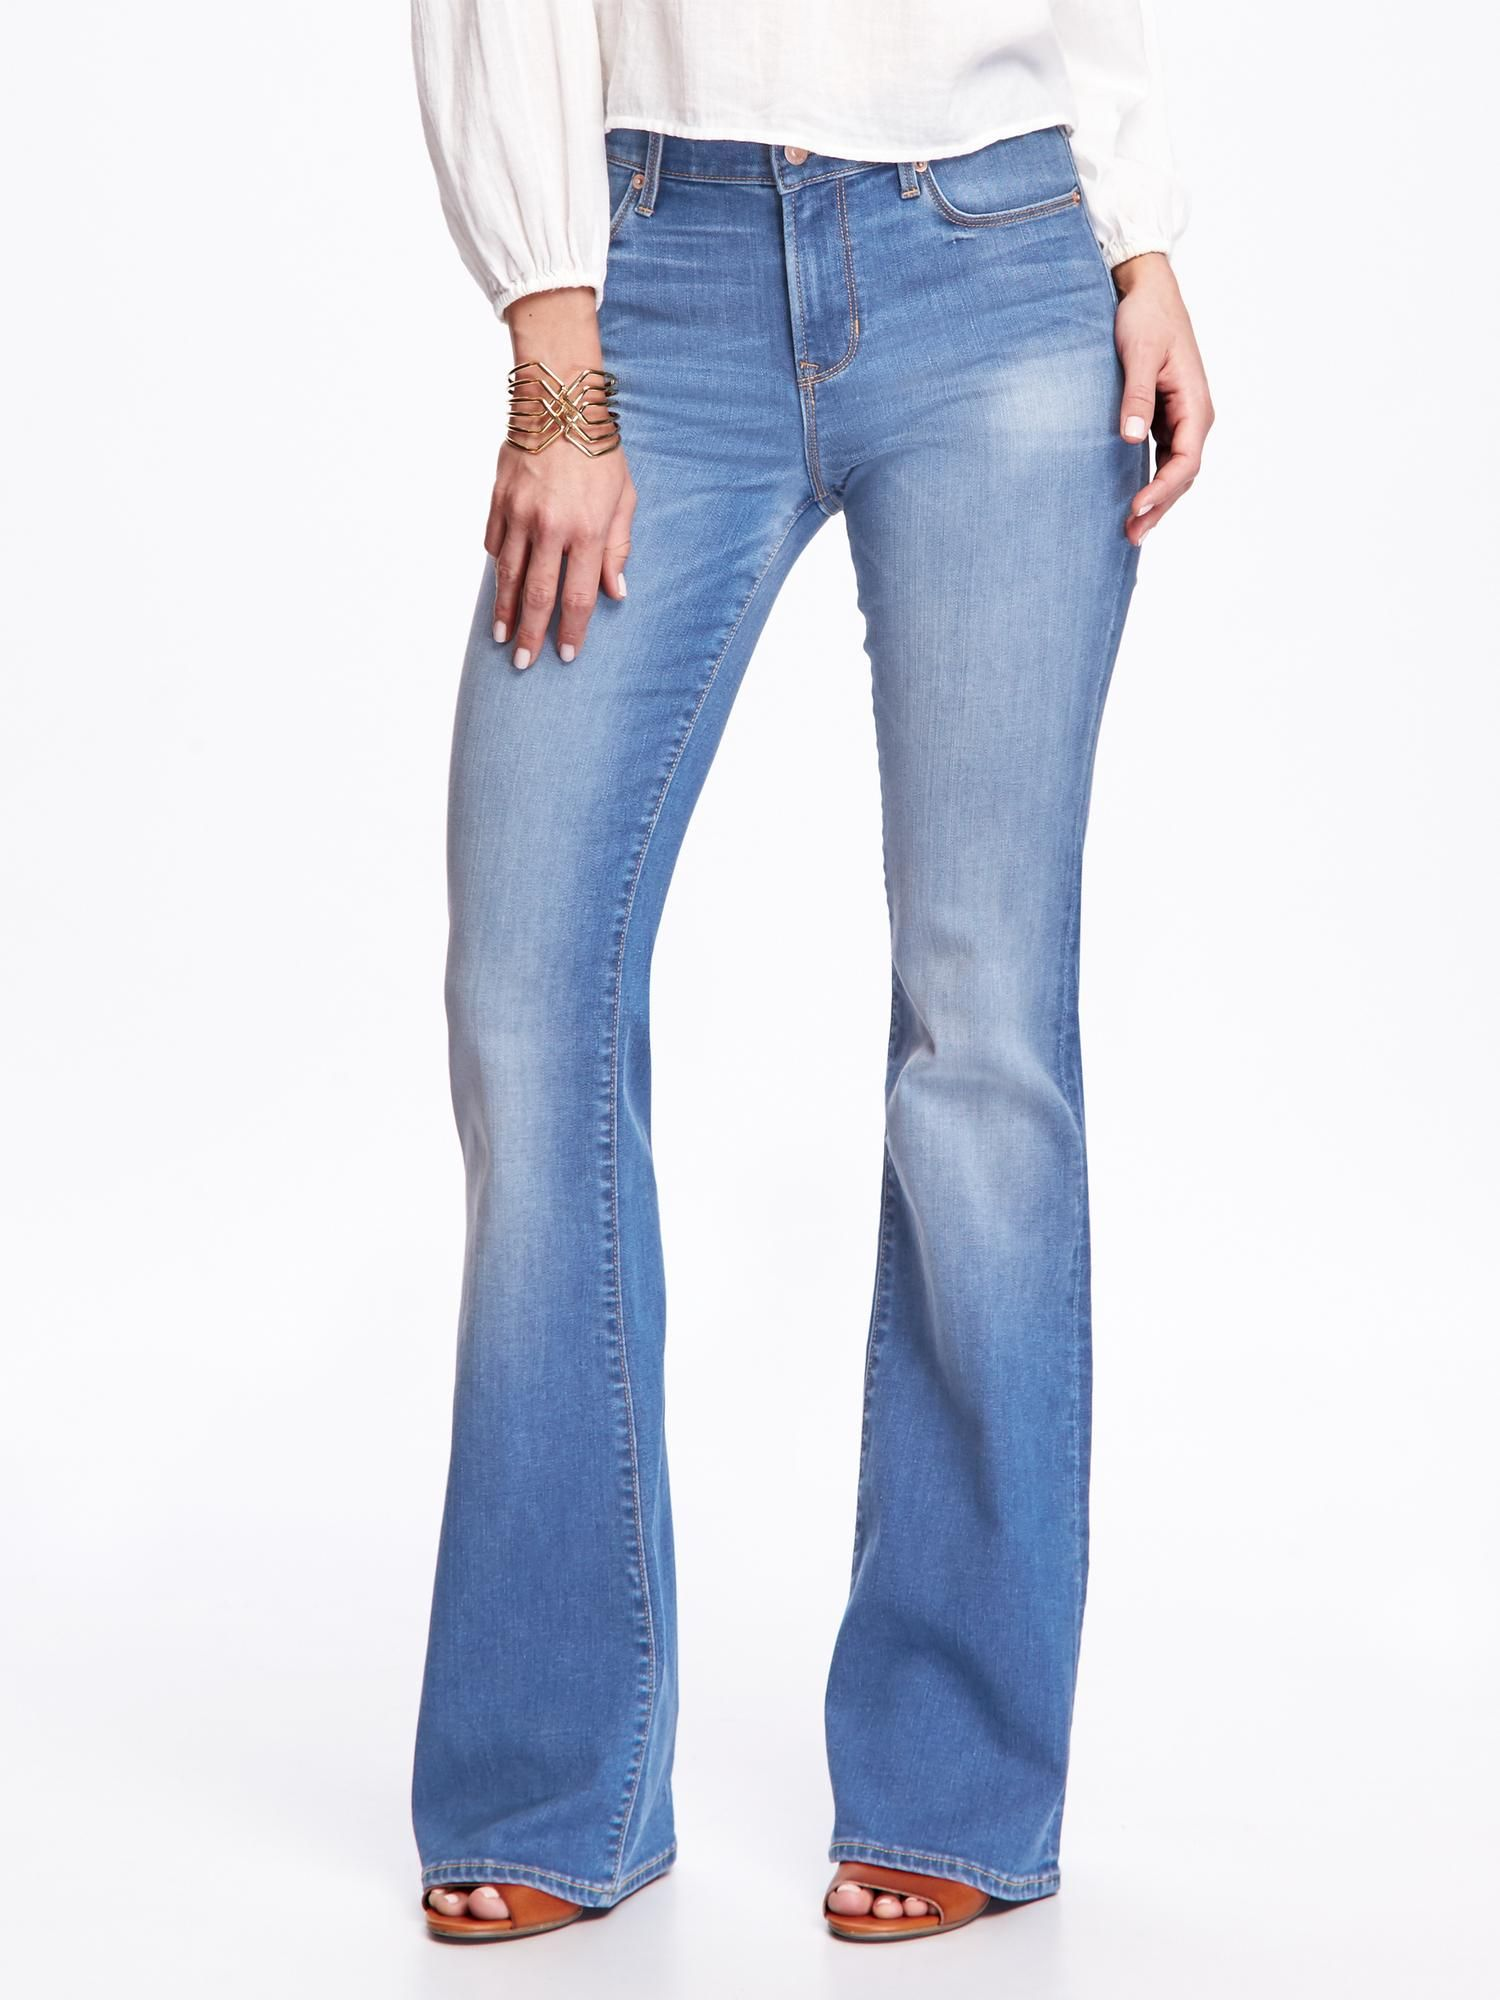 18+ Old navy flare jeans ideas ideas in 2021